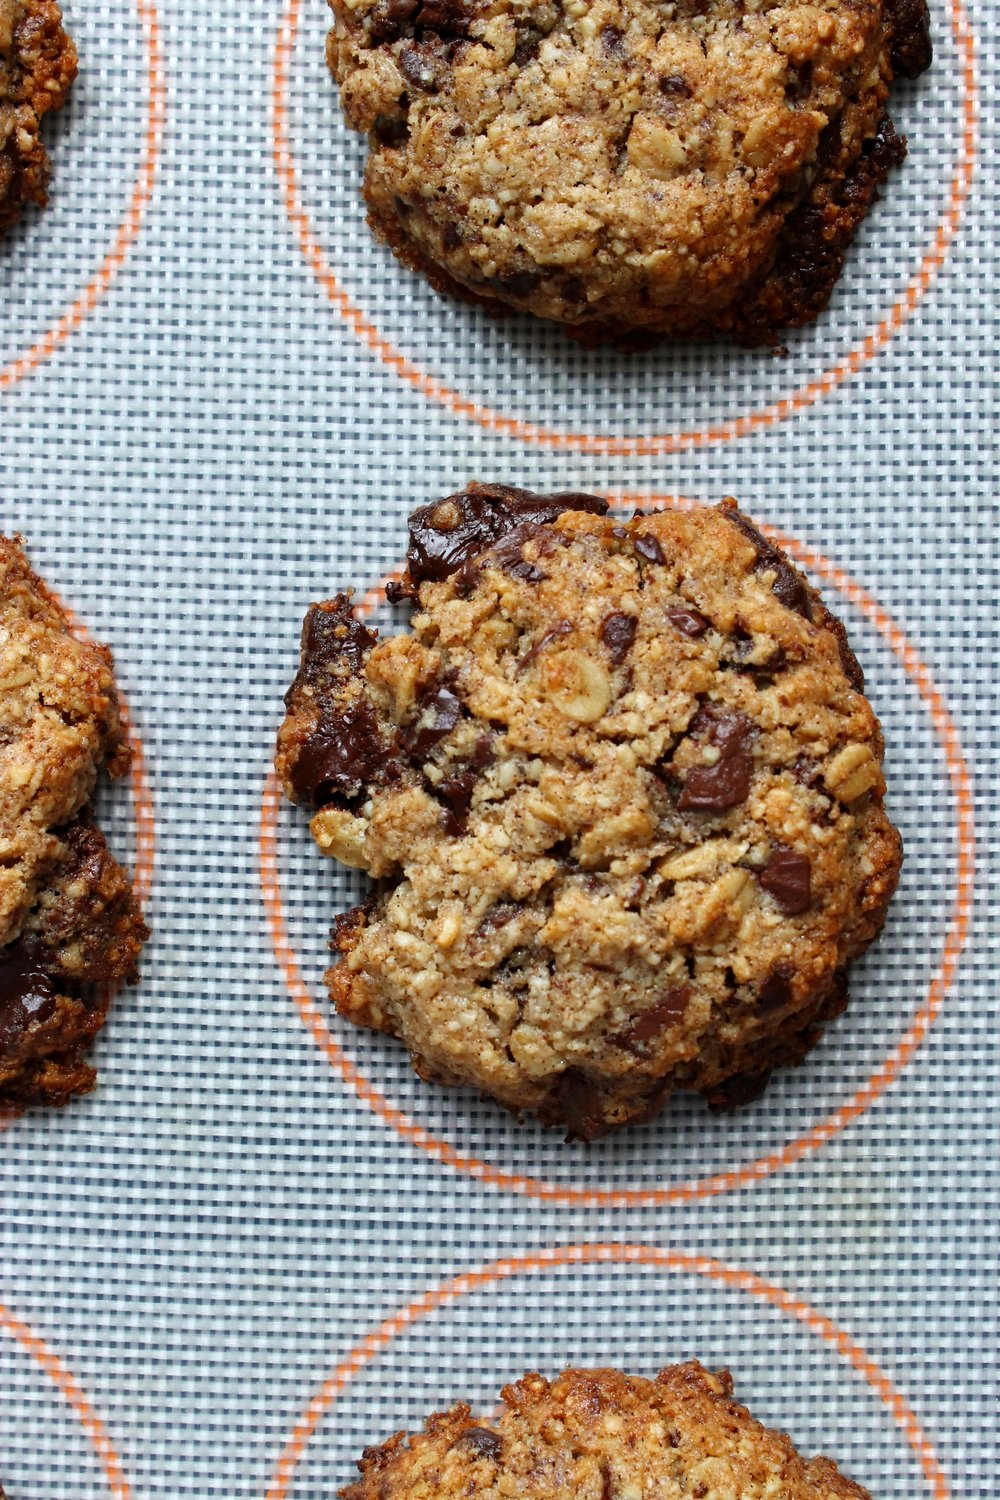 Gluten free chocolate chunk cookies | Beloved Kitchen